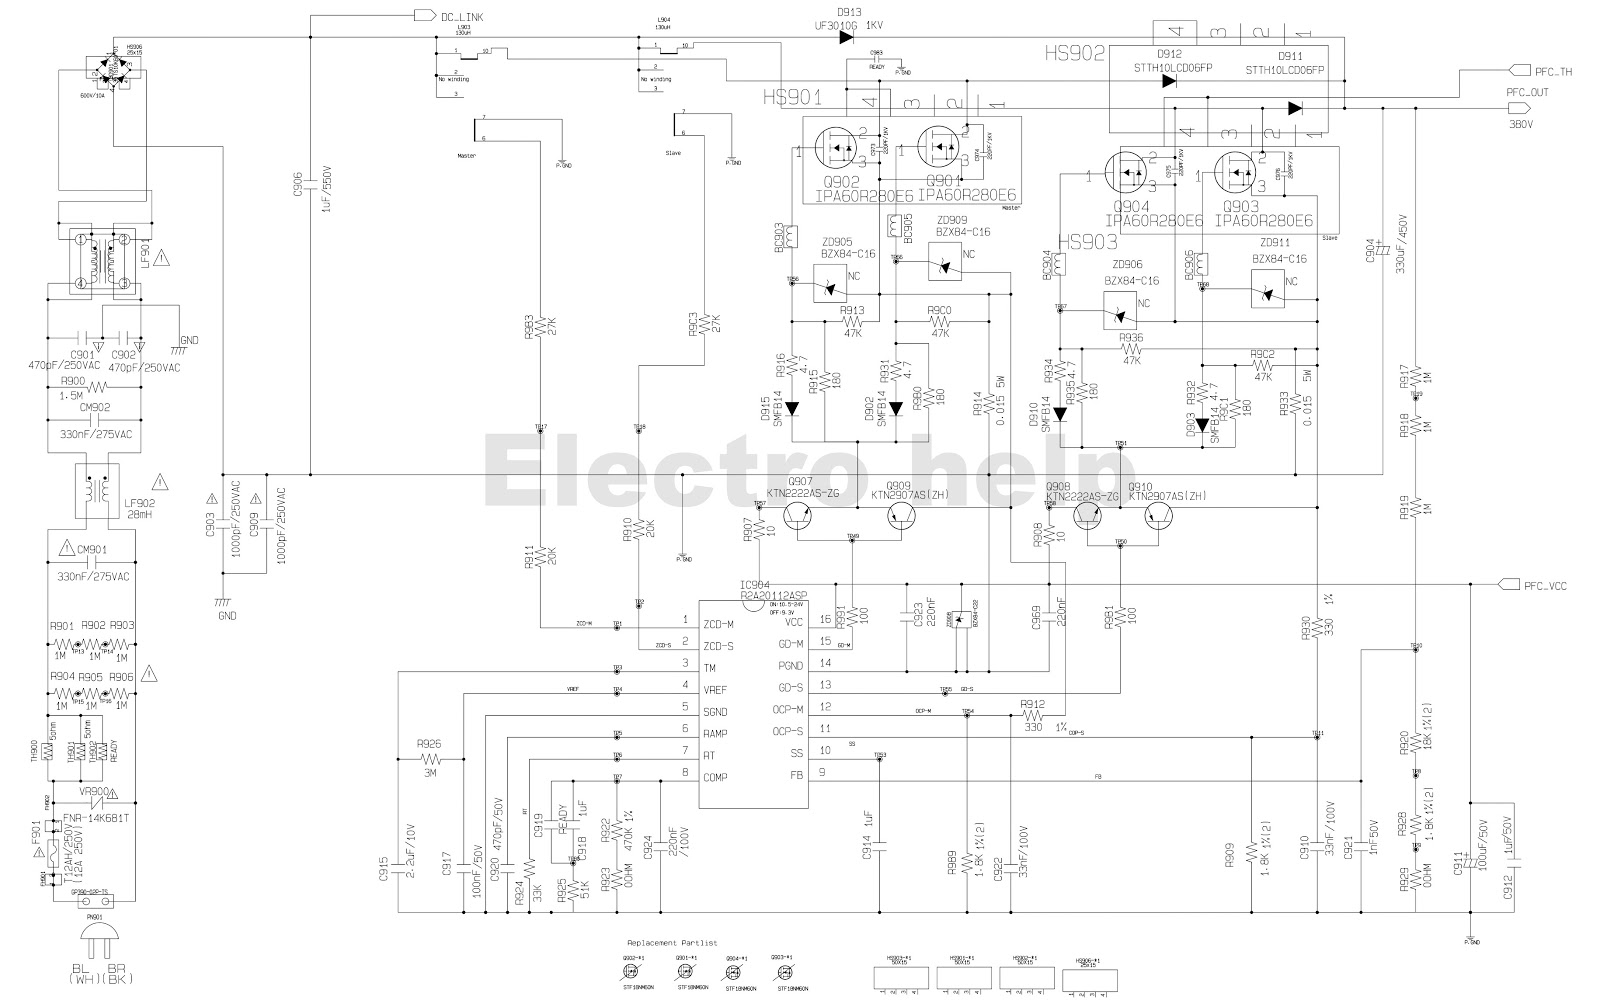 450 W Smps Circuit Diagram Auto Electrical Wiring Atx Schematic Dna1005a Lg Cm8430 Mini Hifi Shelf System Of 1 Kv For Positioning The